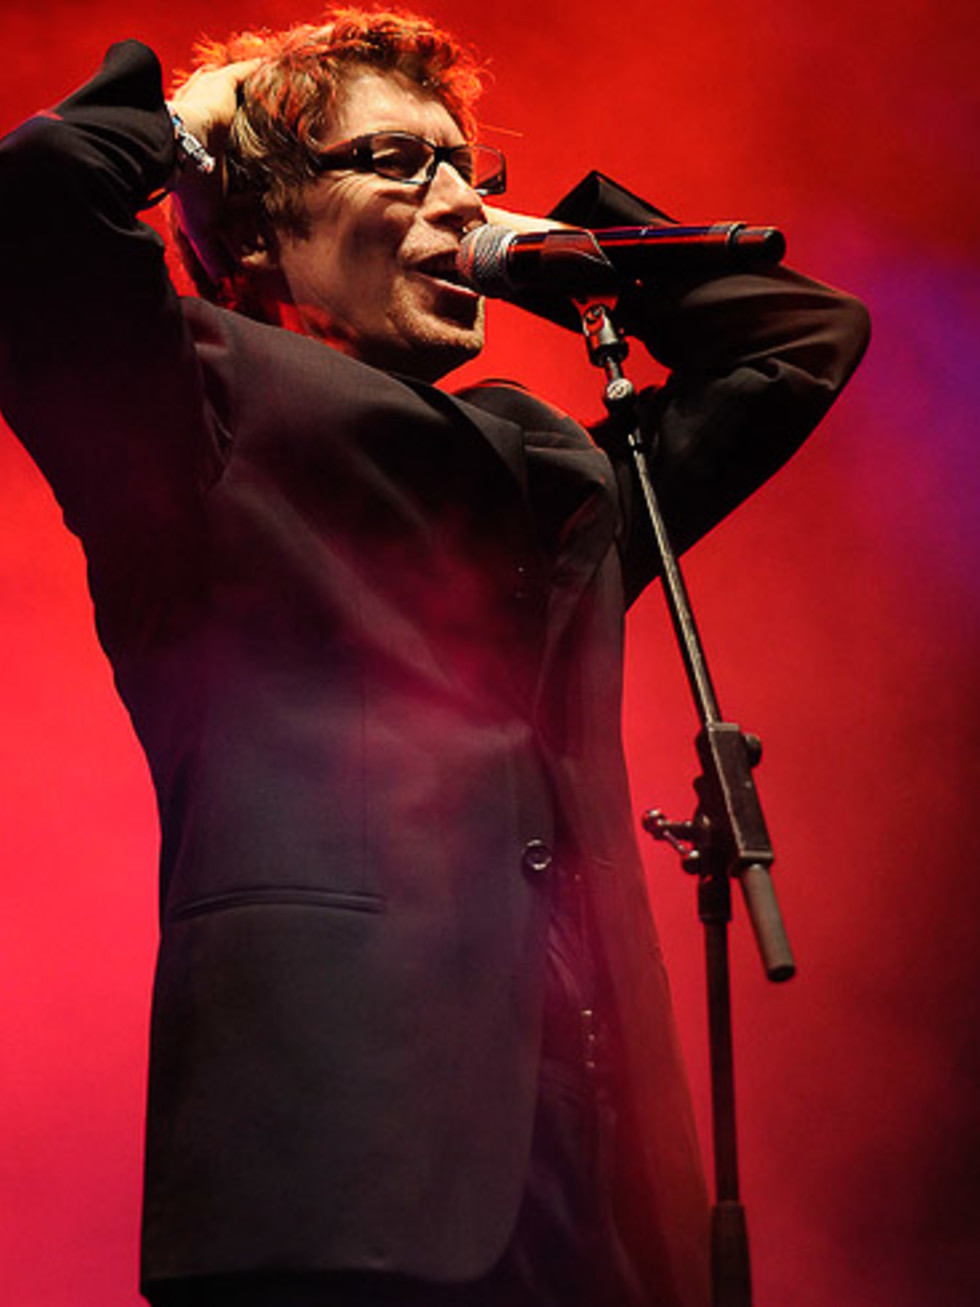 News_Michael_concert pick_Psychedelic Furs